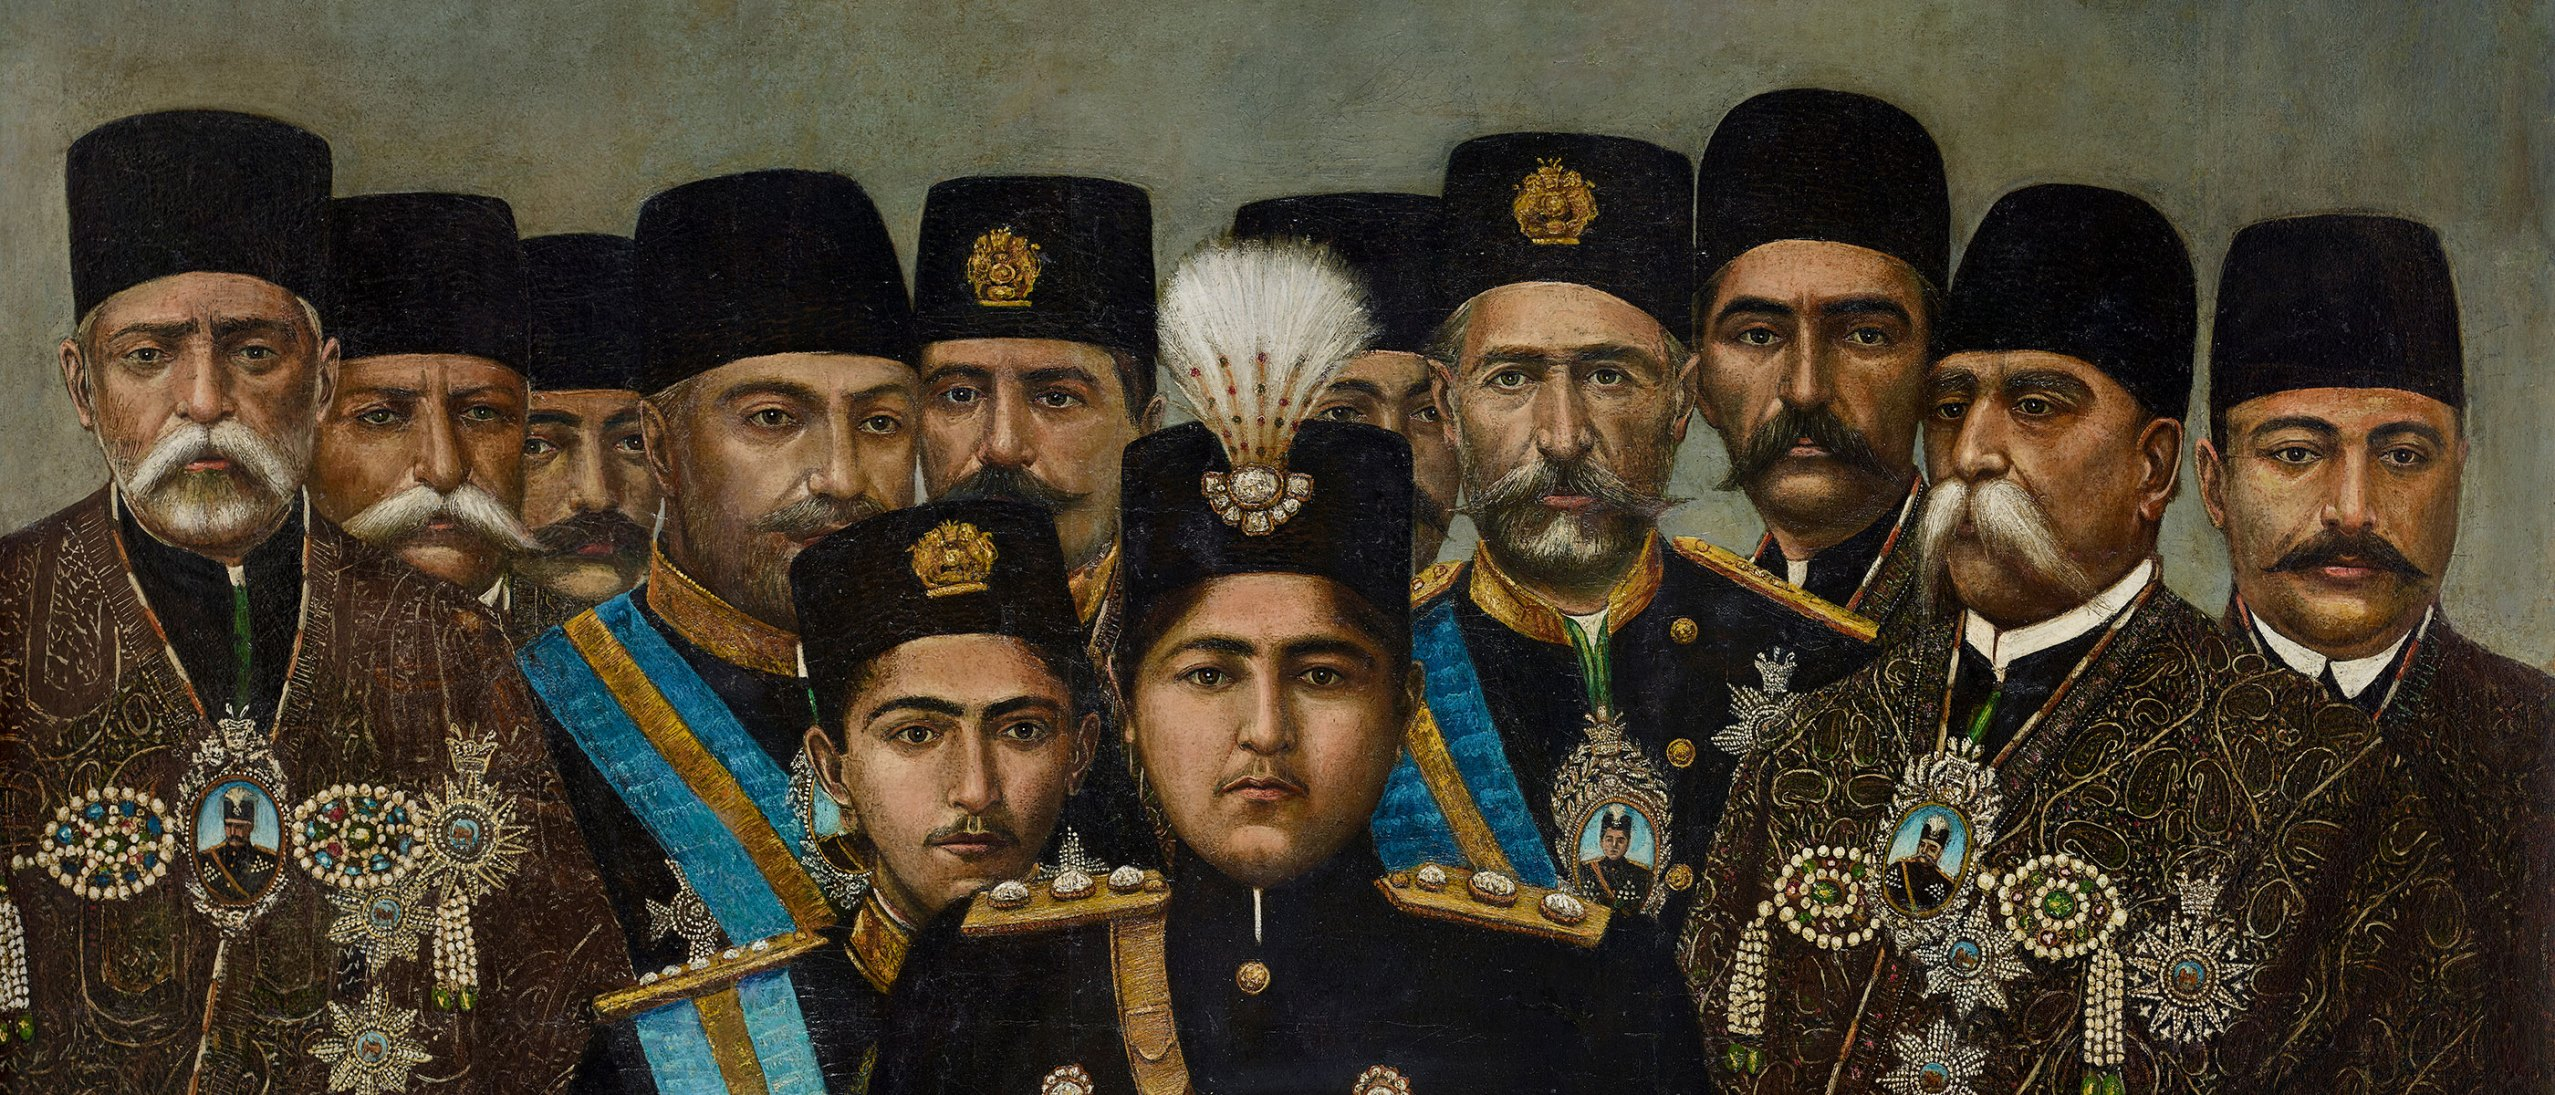 deatil from Ahmad Shah Qajar and his Cabinet - 11 men stand behind two central figures